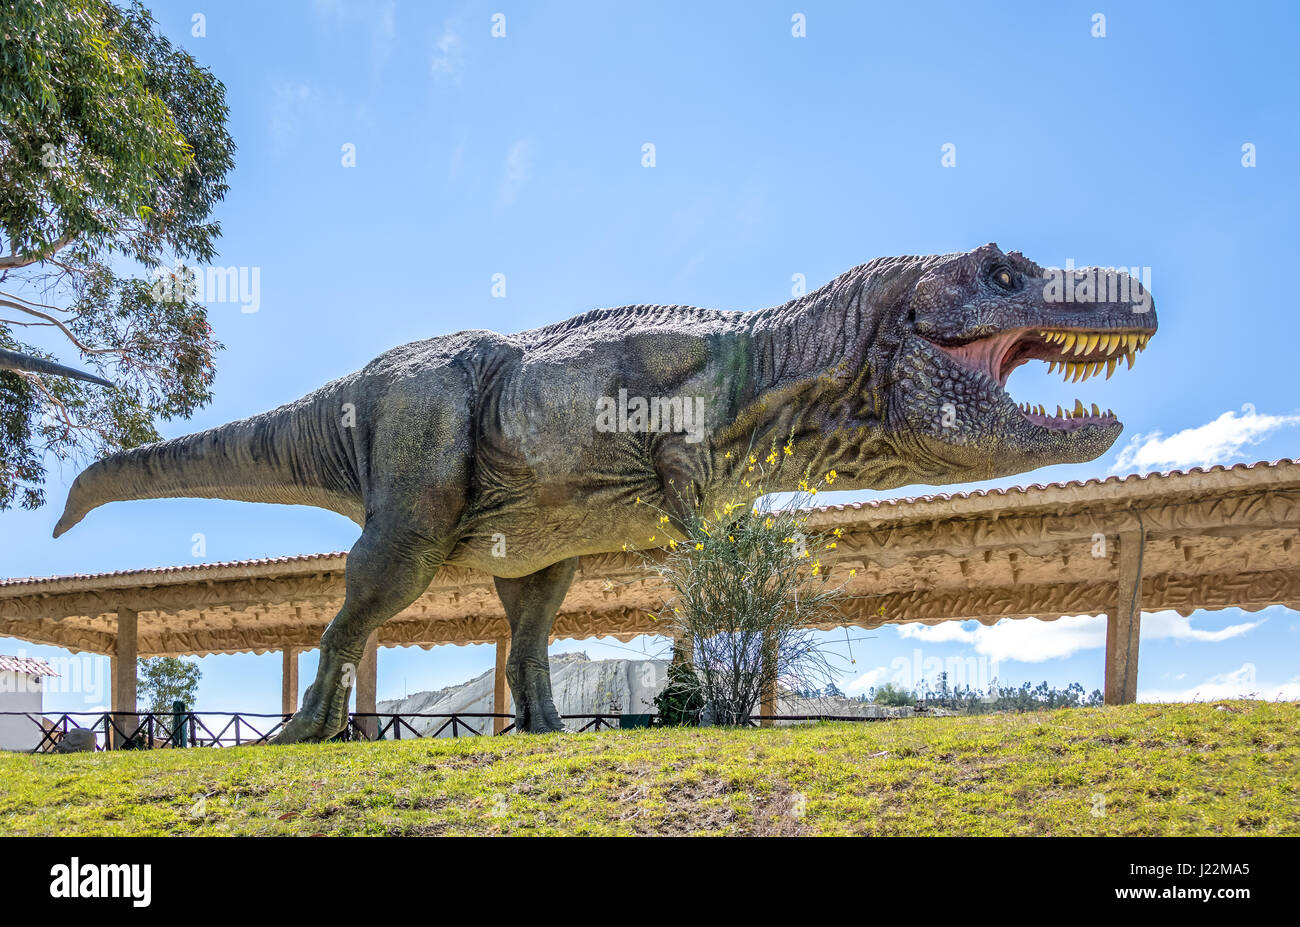 Dinosaur Model in Cretaceous Park of Cal Orcko - Sucre, Bolivia - Stock Image